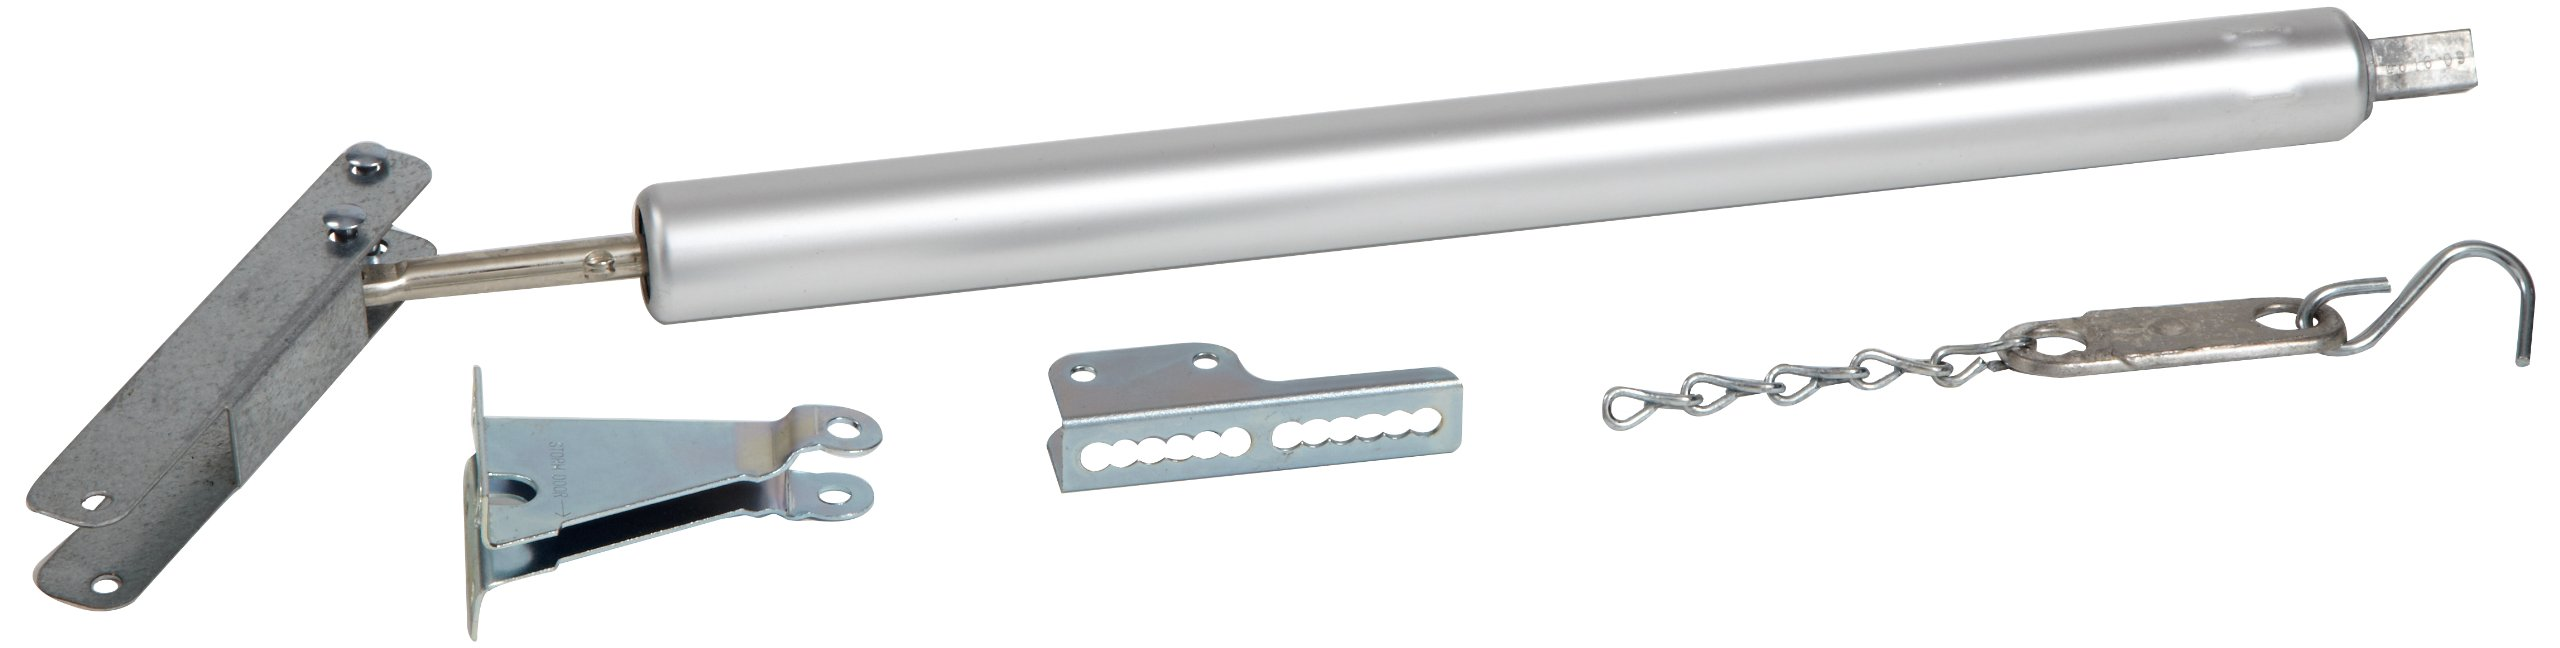 Eagle 1993G Self-Closing Adapter Kit, for 1946 and 4610 Flammable Storage Safety Cabinets